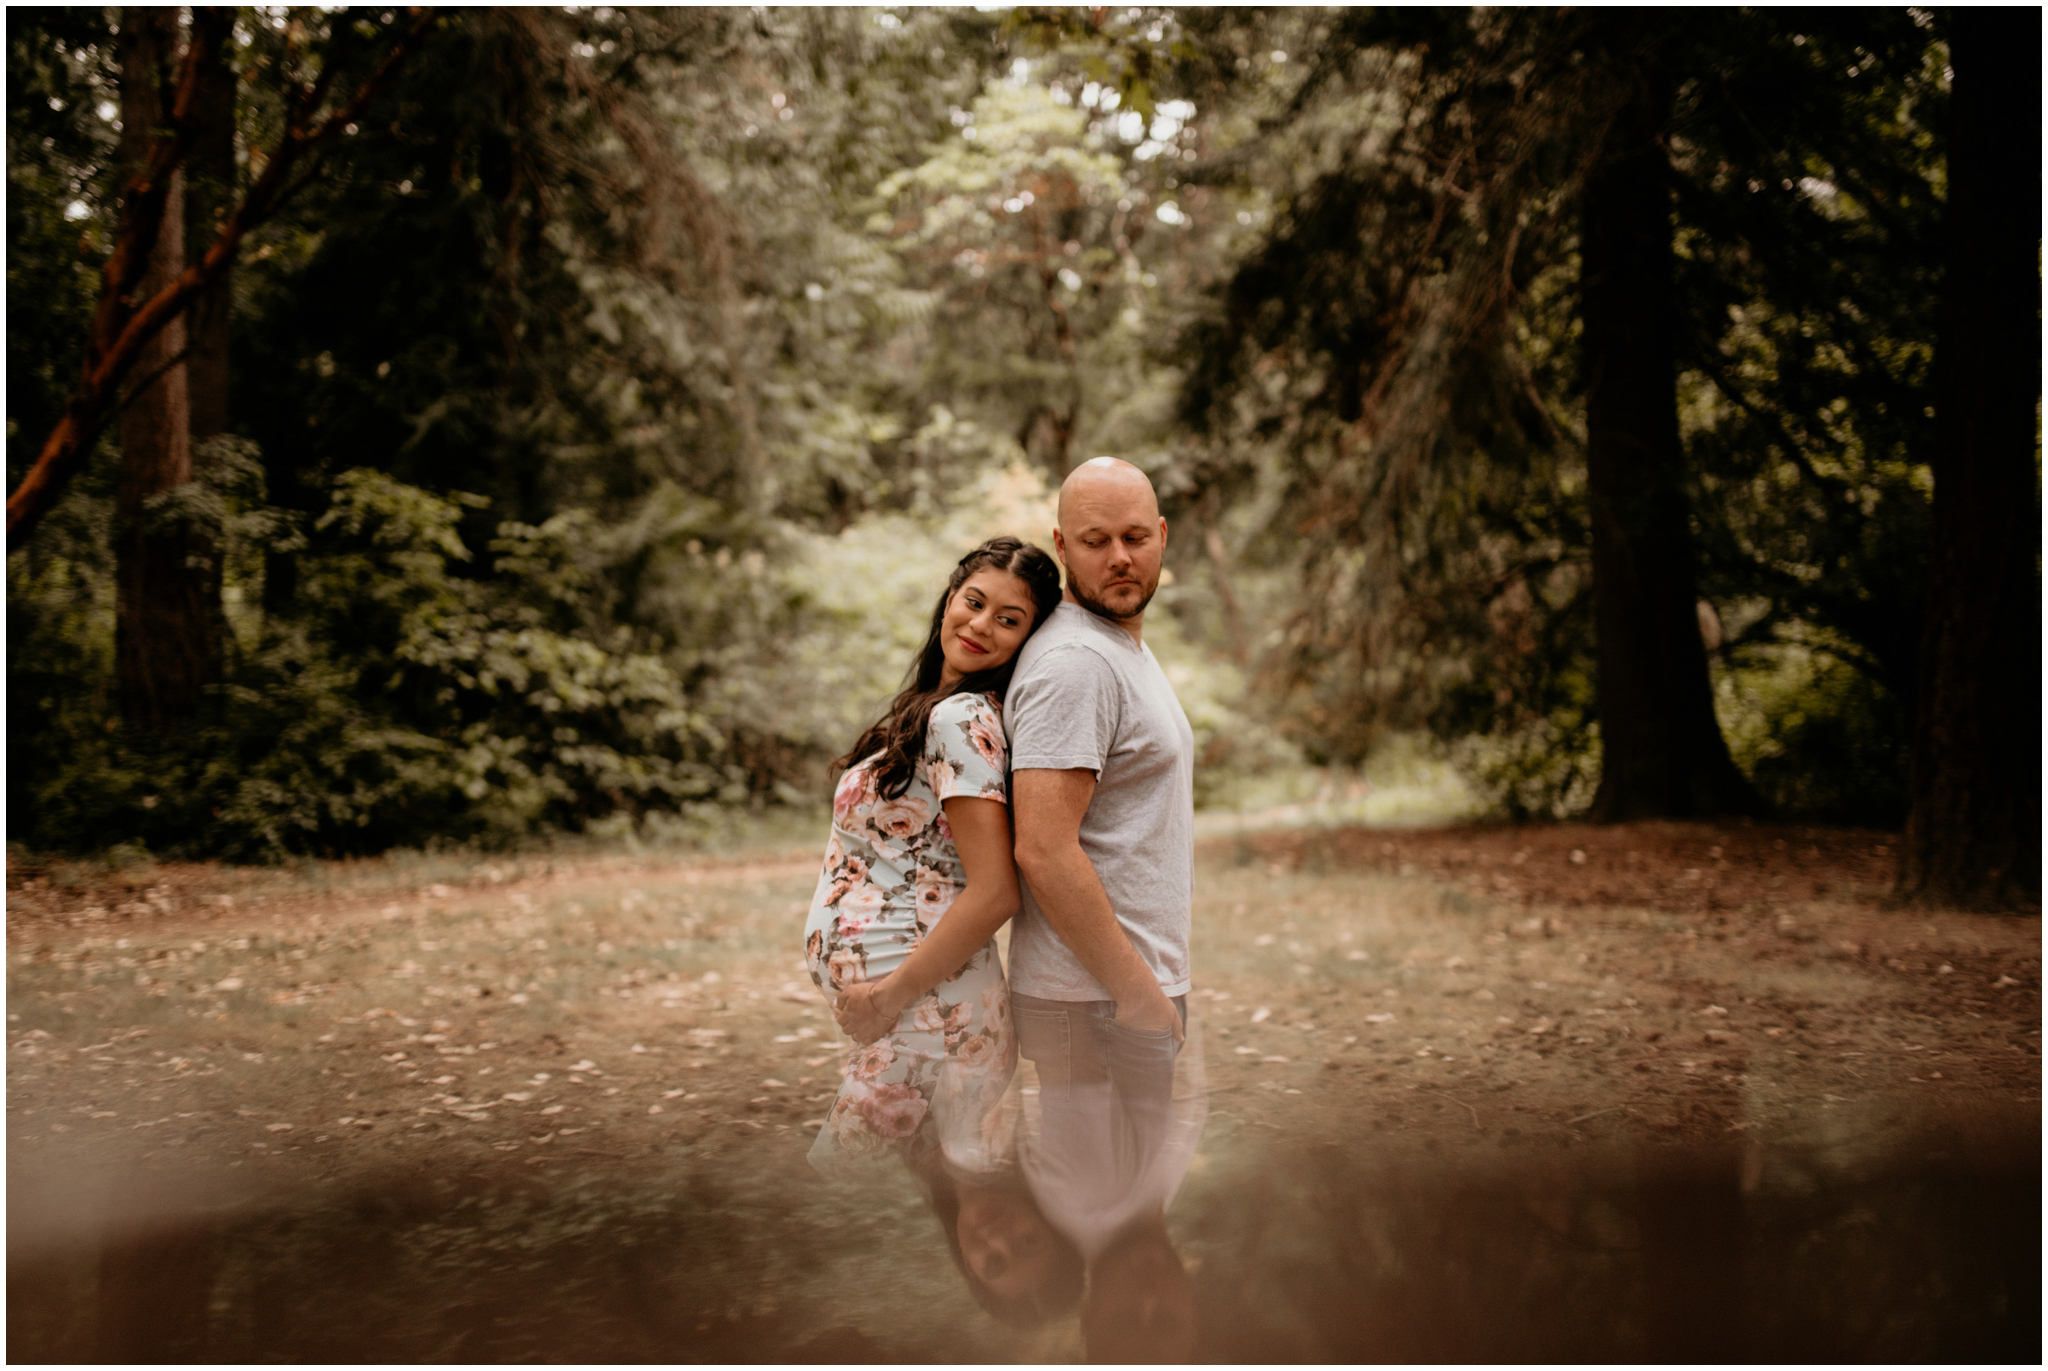 caitlin-jake-maternity-session-seattle-portrait-photographer-025.jpg